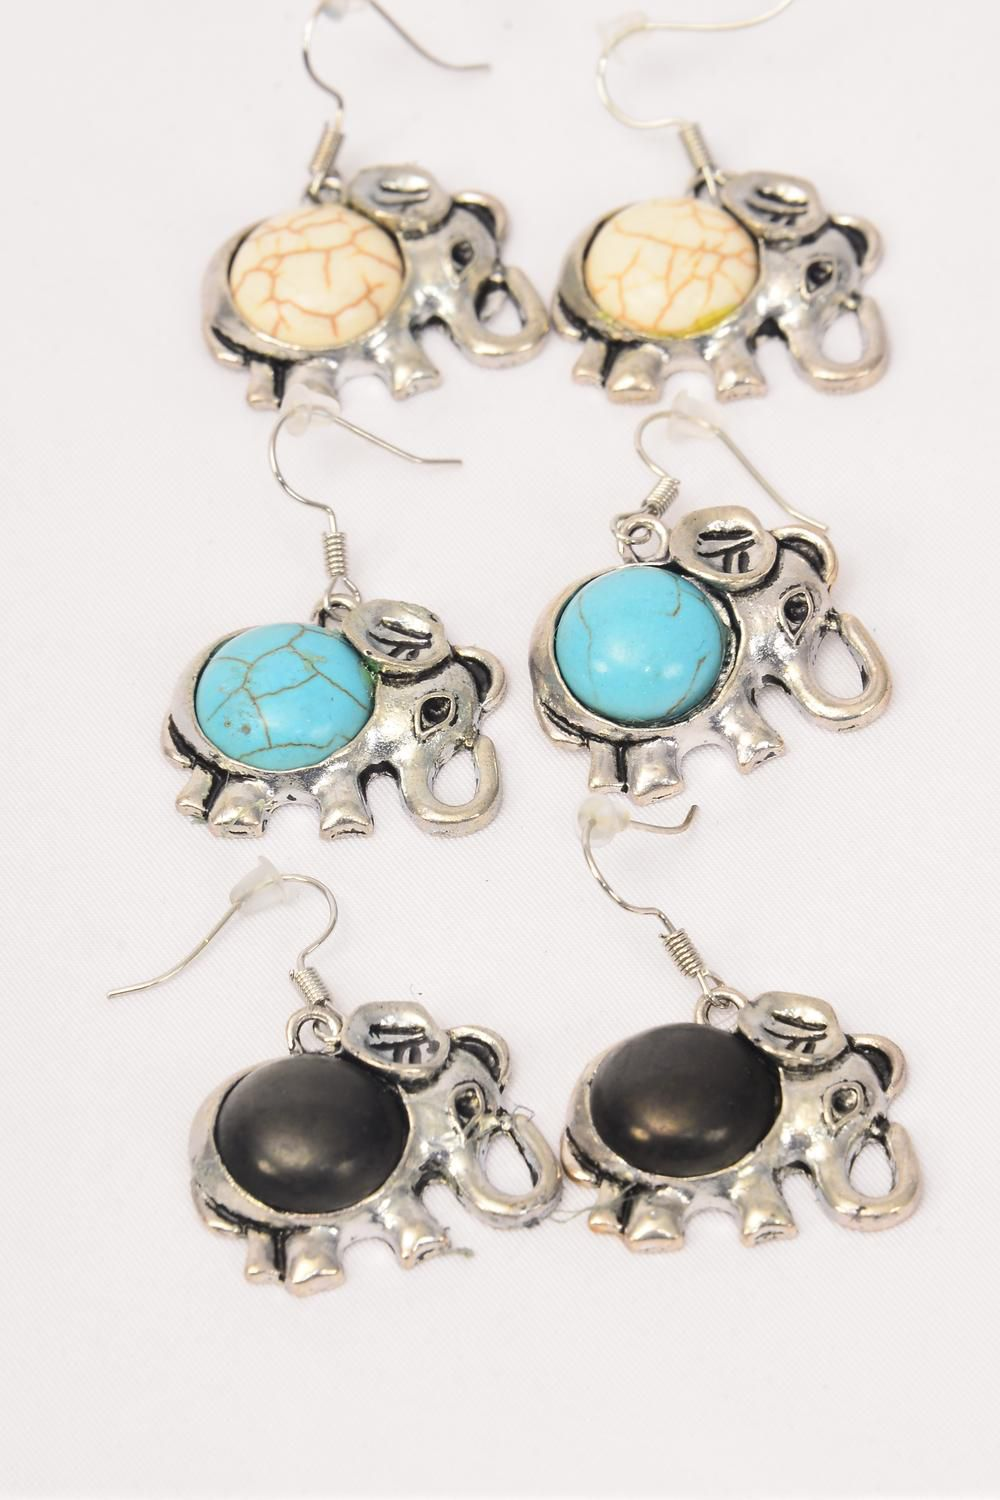 "Earrings Metal Antique Elephant Semiprecious Stone/DZ match 75029 **Fish Hook** Size-1""x 1"" Wide,4 Black,4 Ivory,4 Turquoise Asst,Earring Card & OPP Bag & UPC Code"